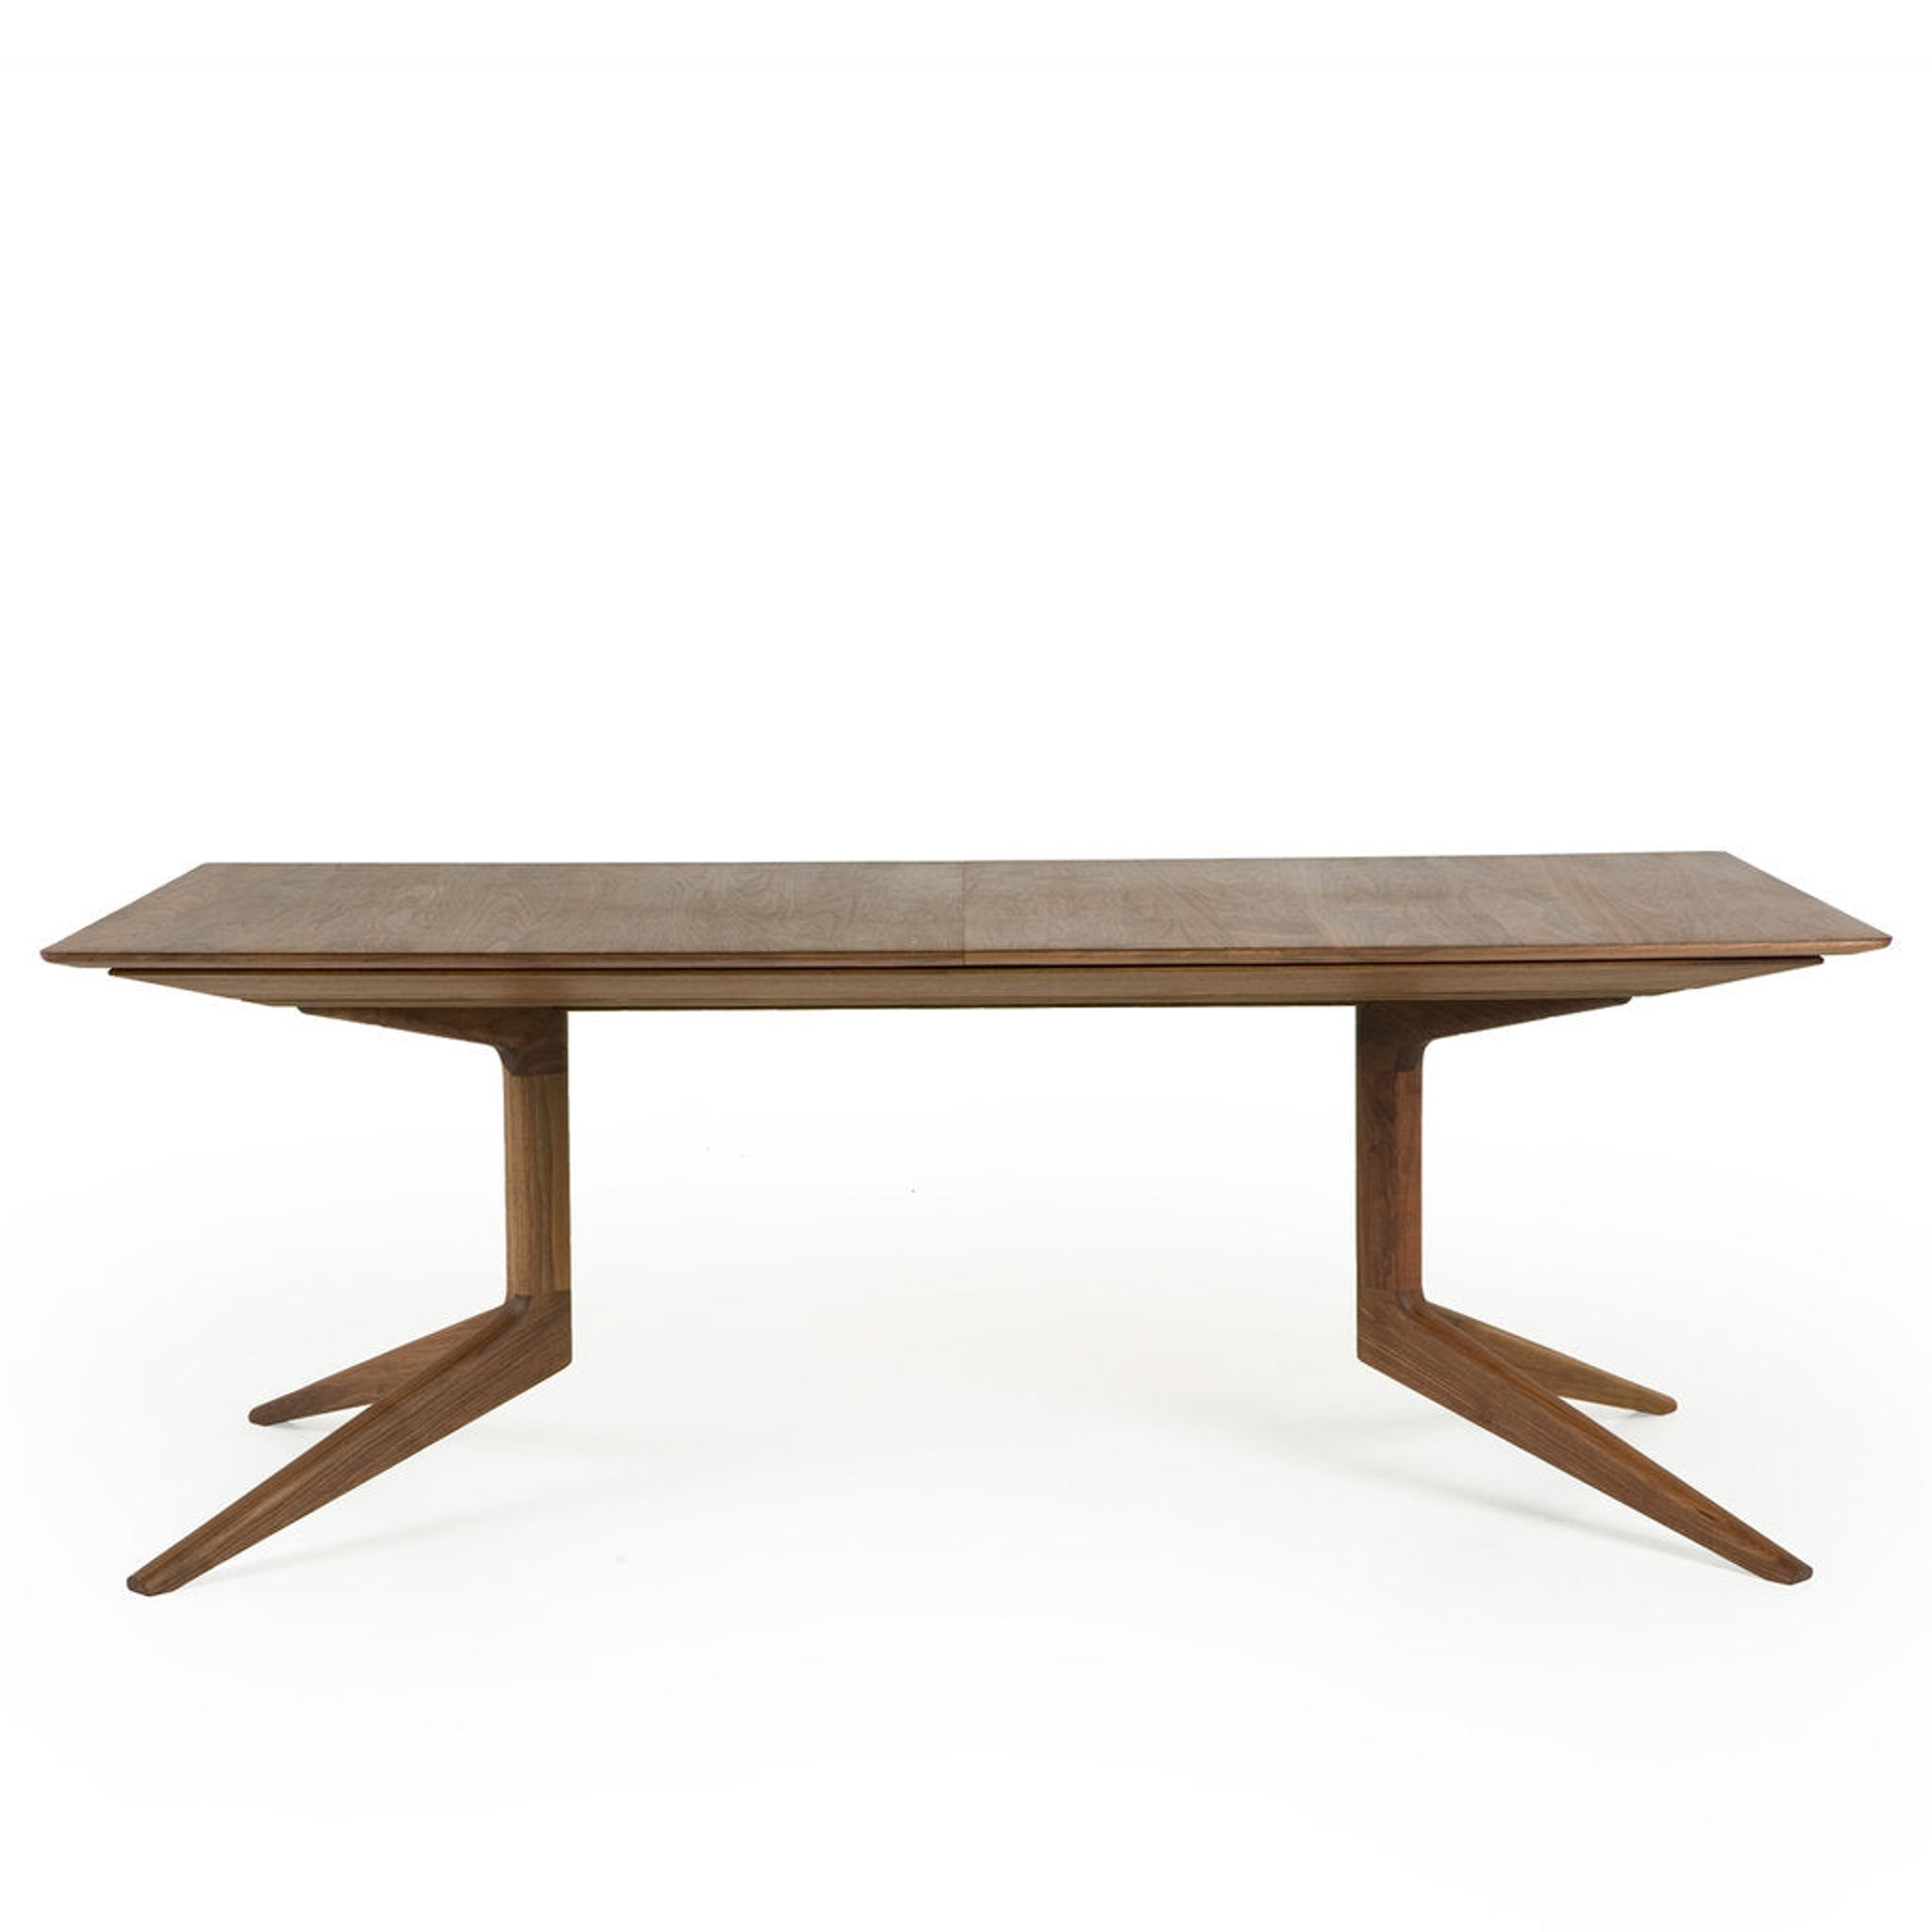 Light Extending Table by Matthew Hilton